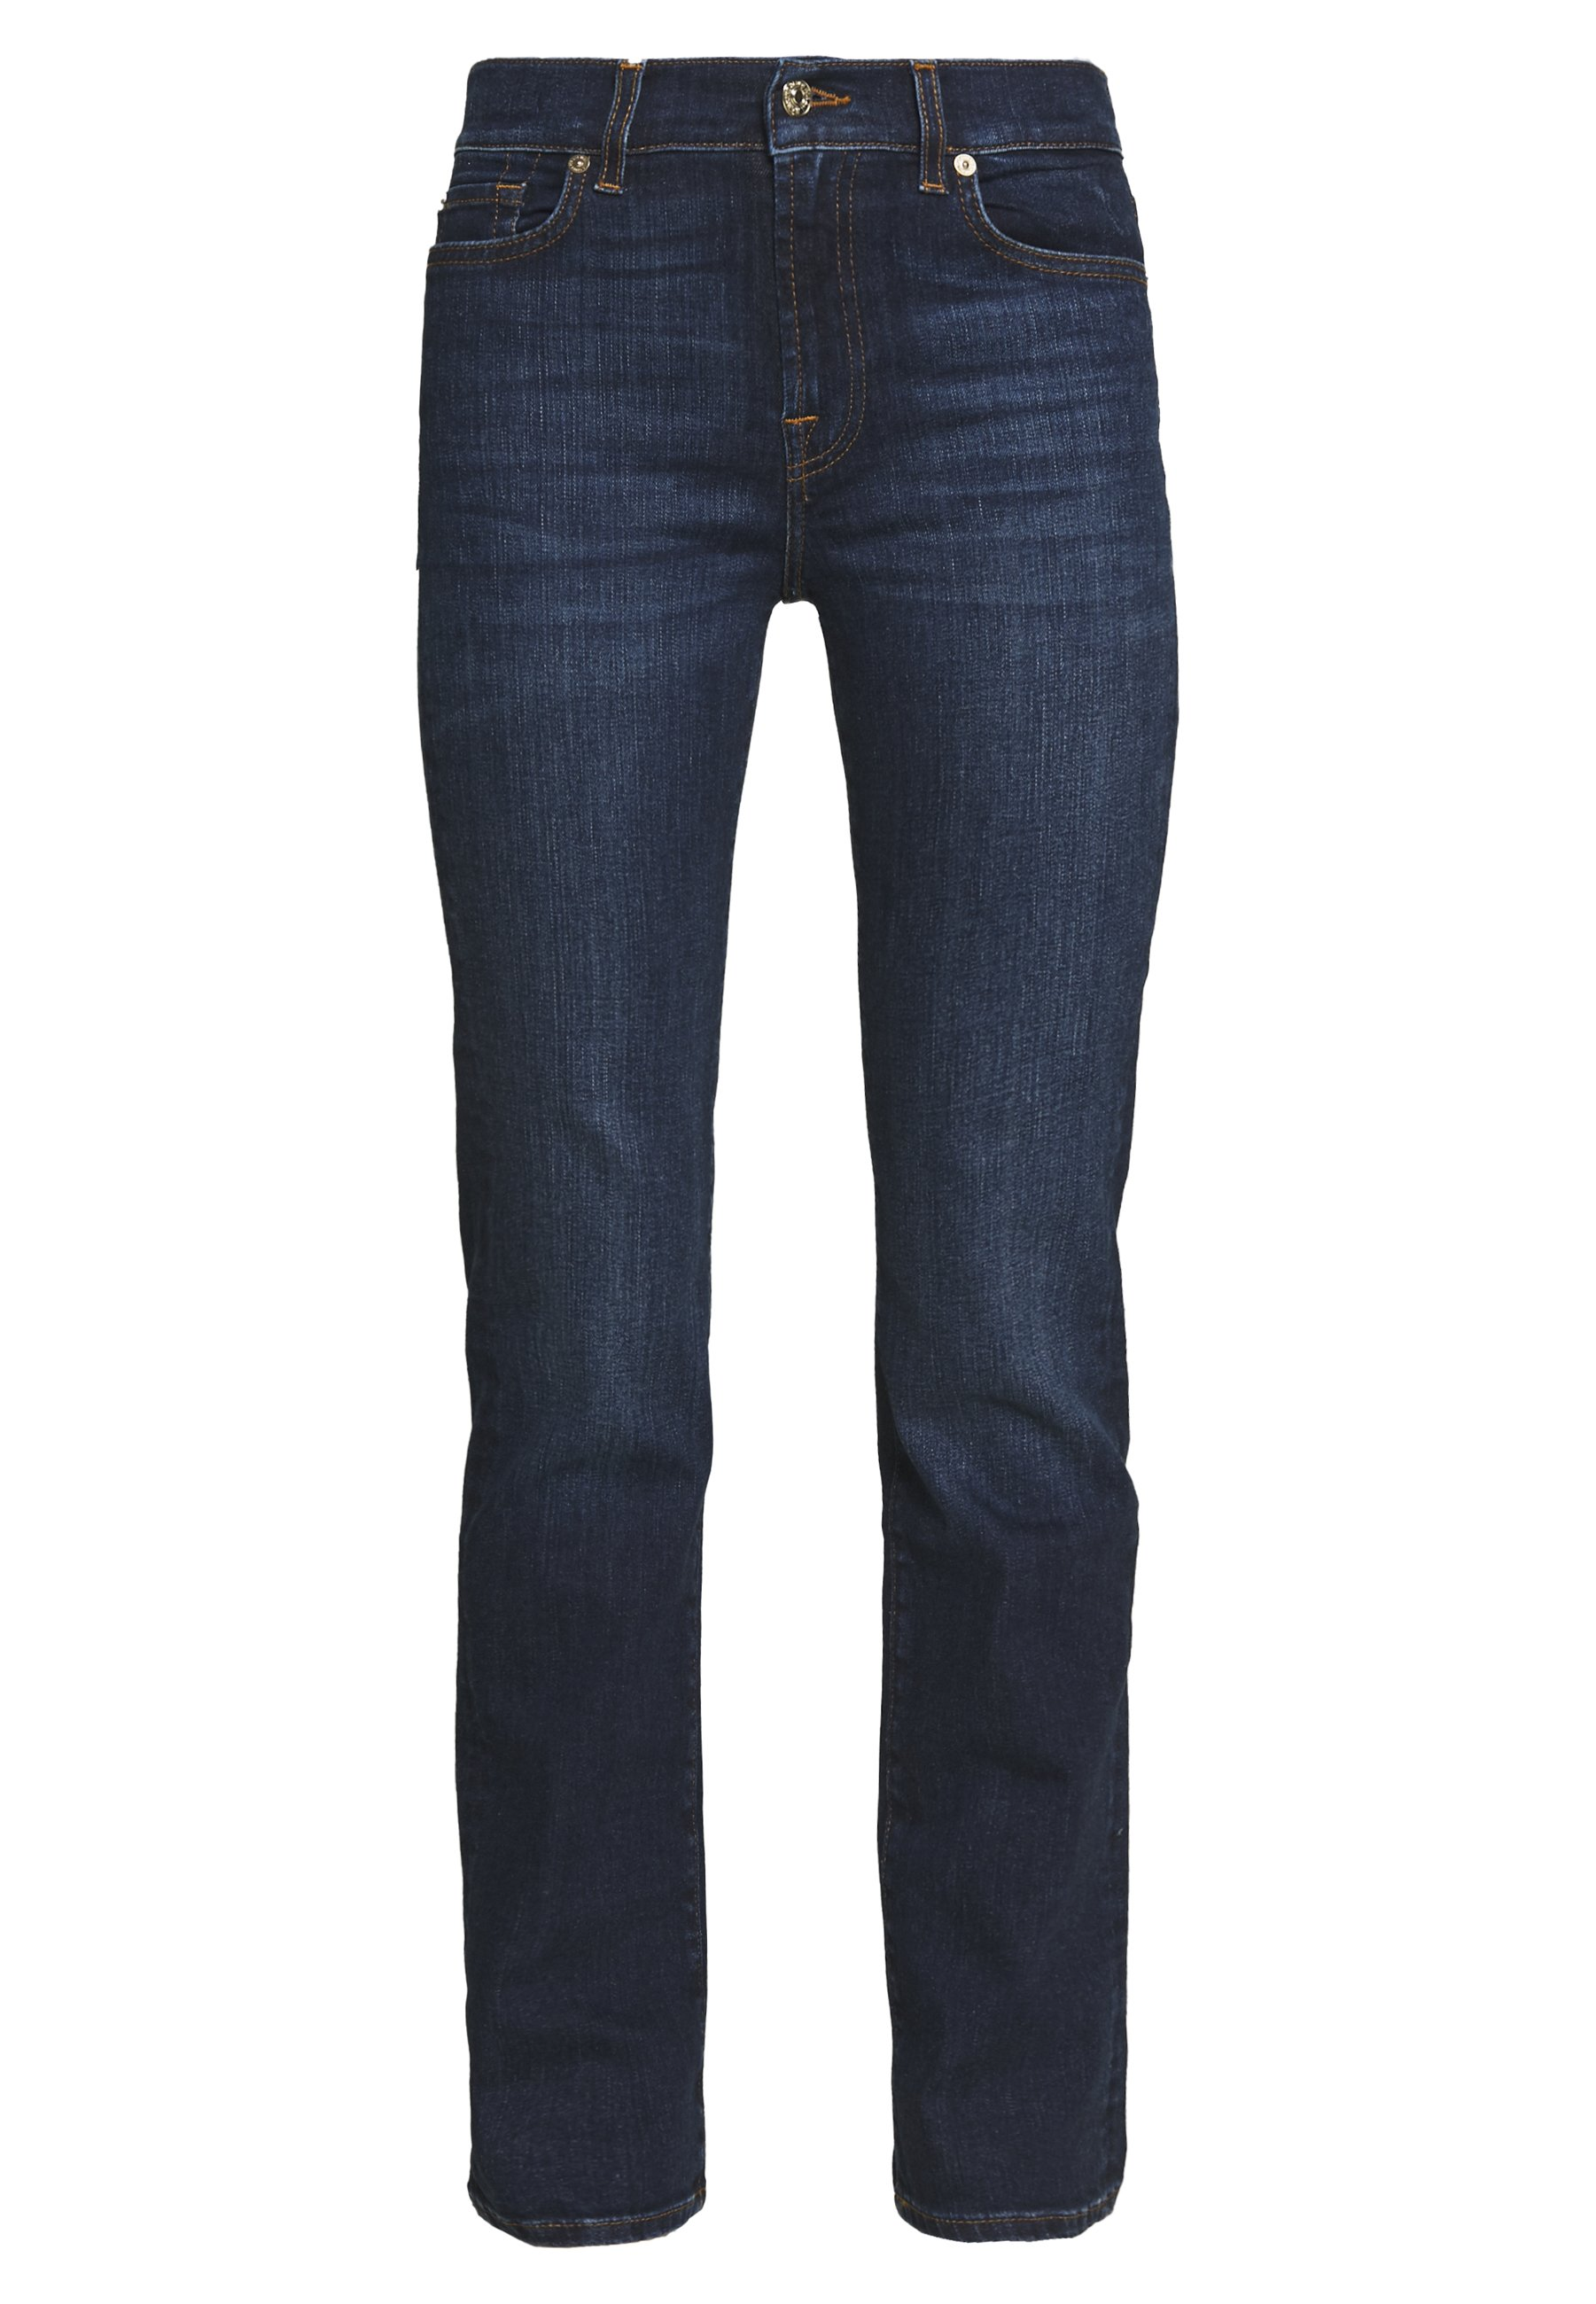 7 for all mankind Jeansy Straight Leg - dark blue